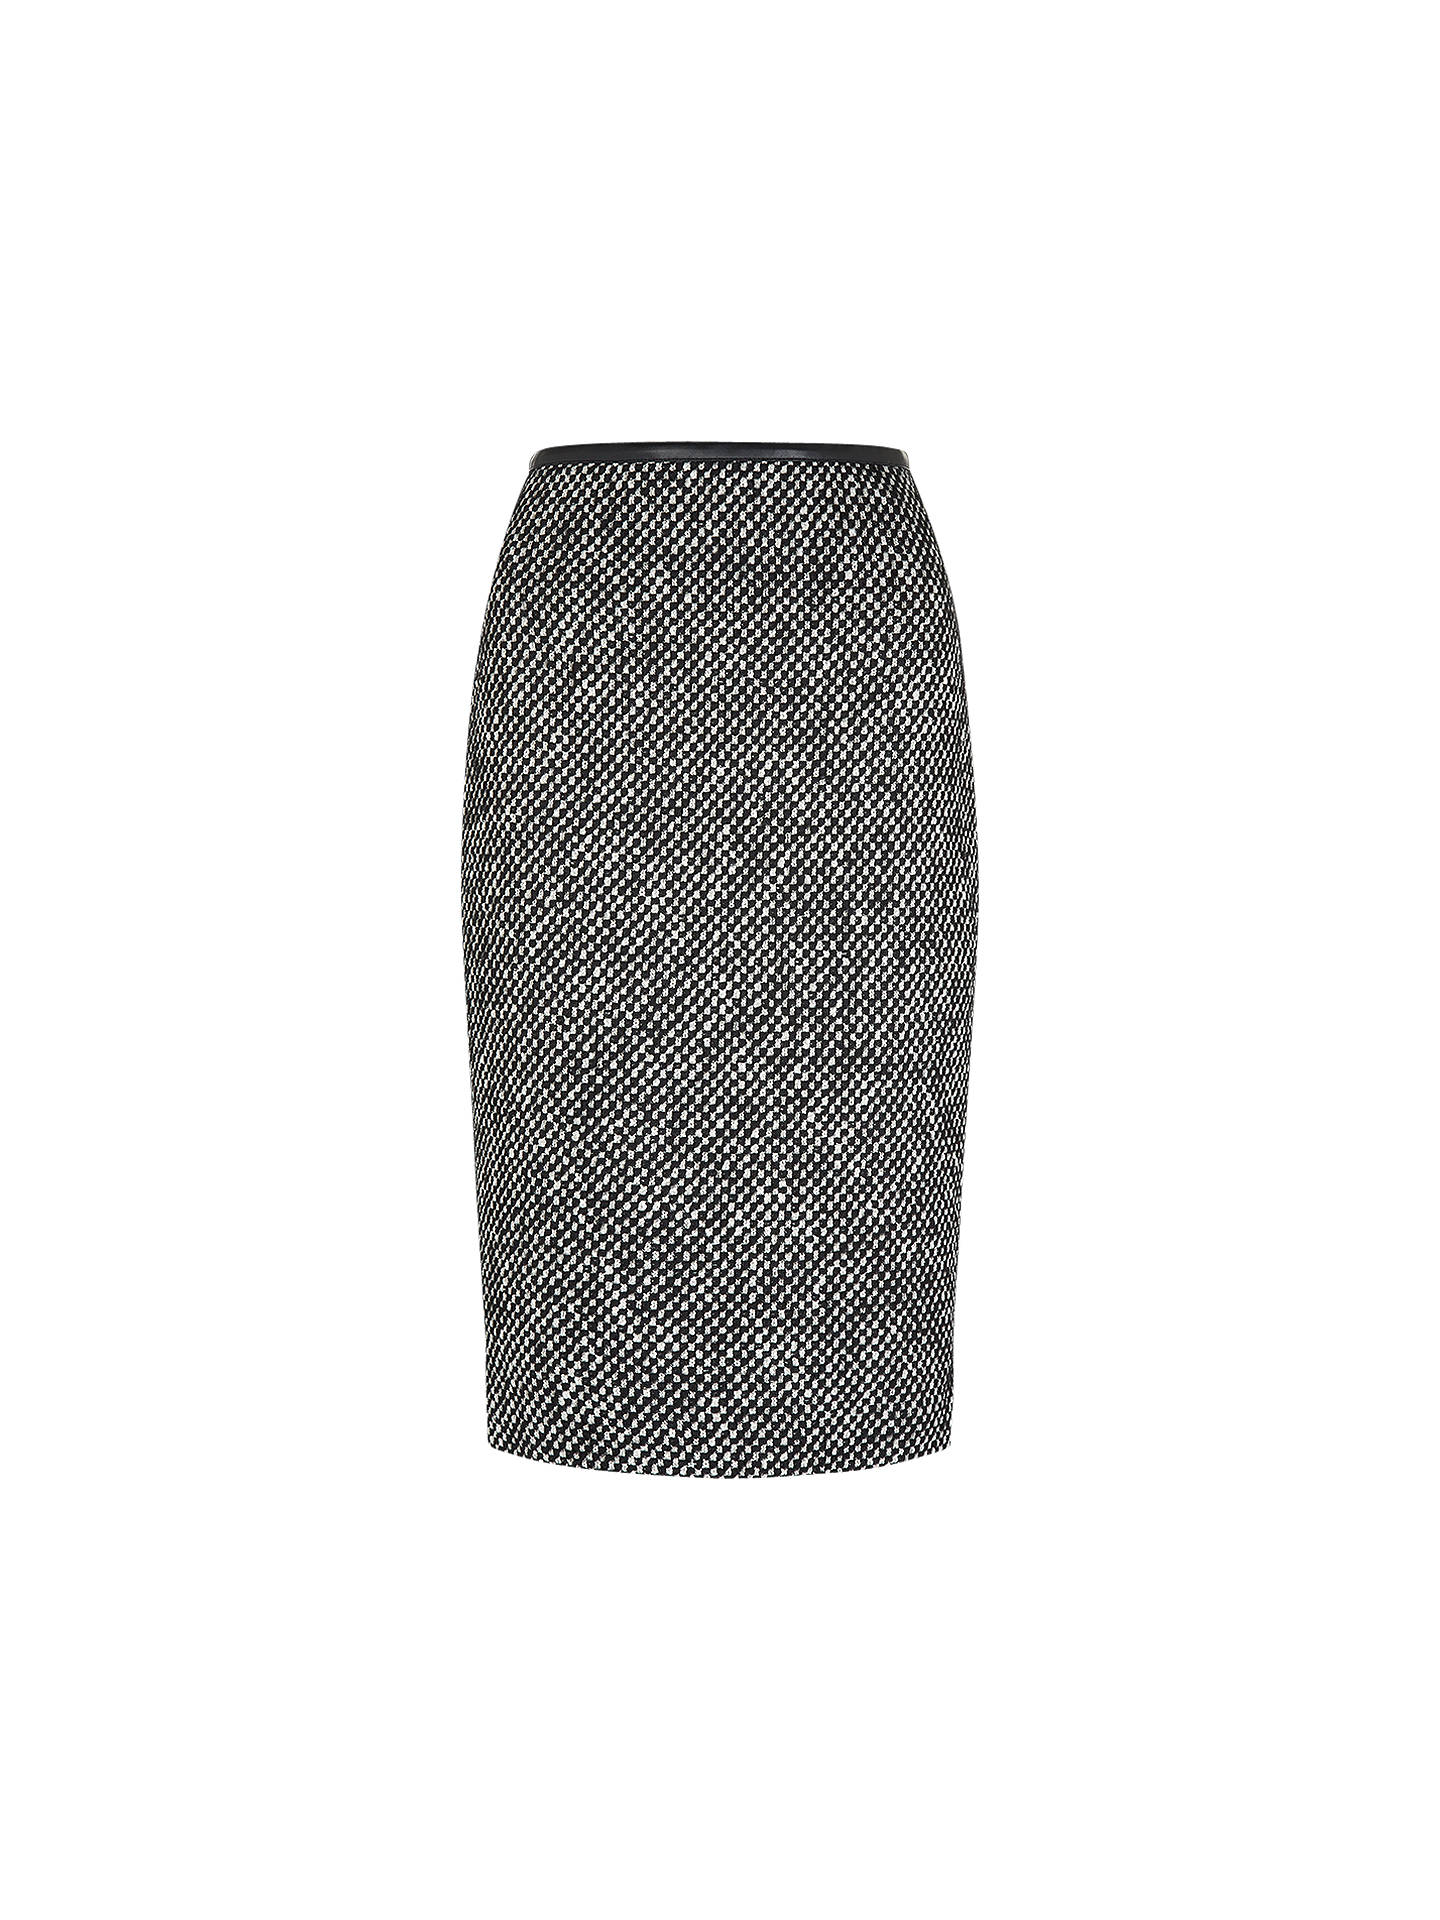 Buy Hobbs London Nave Skirt, Black Ivory, 8 Online at johnlewis.com